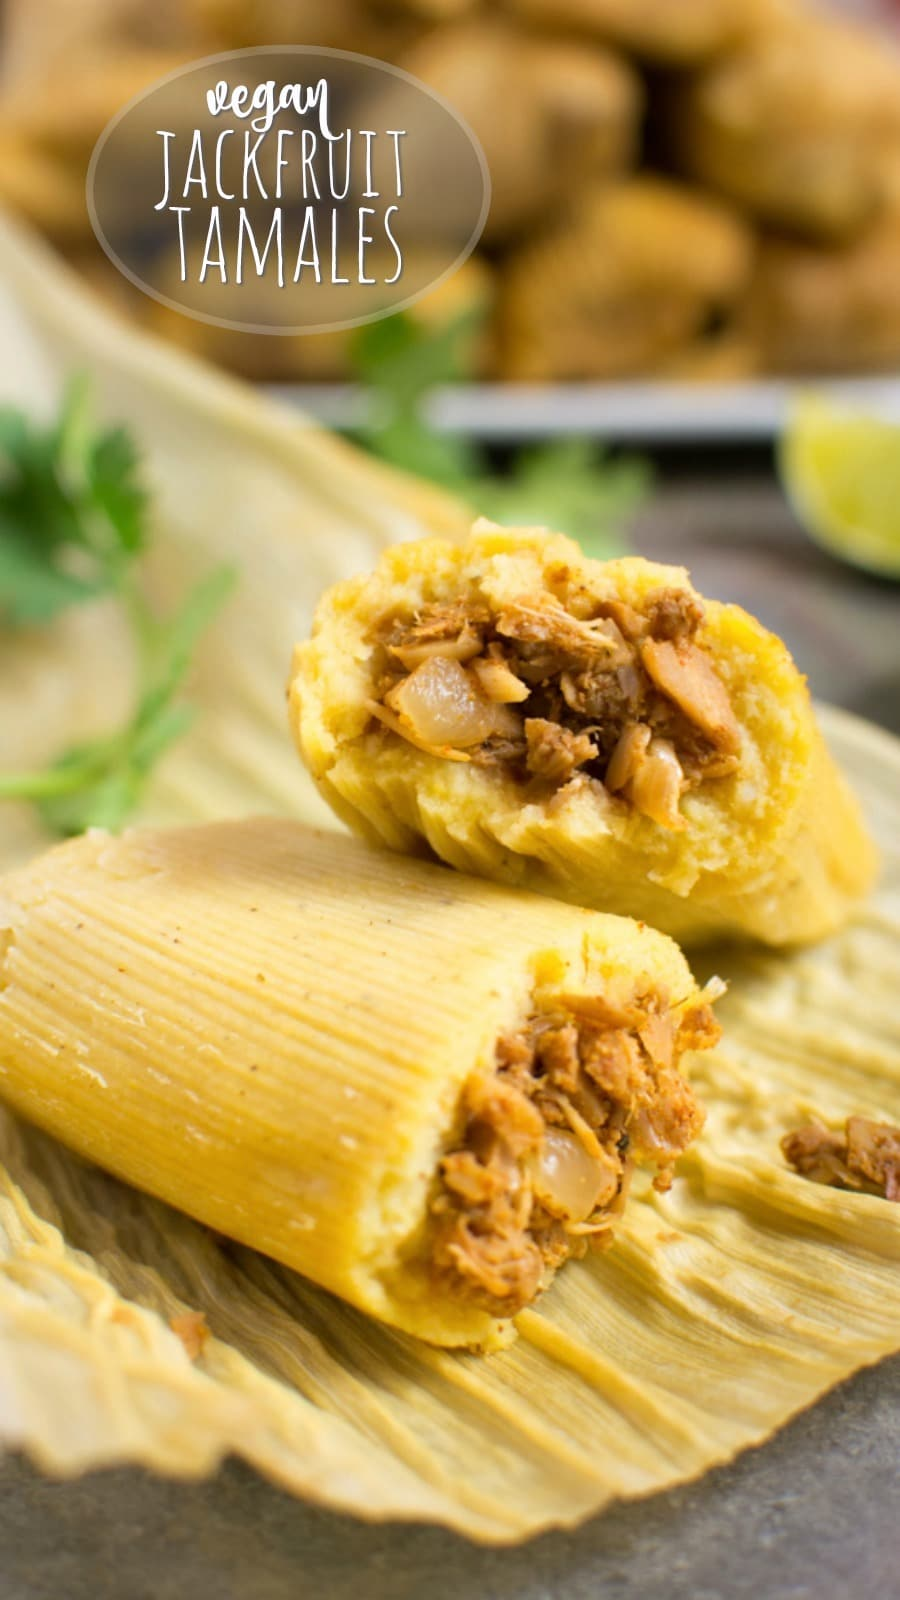 Homemade jackfruit vegan tamales are easier to make than you may think.  This step-by-step recipe will guide you through the tamale making process with ease.  So you'll be enjoying flavorful vegan tamales in no time!  Steam them in the Instant-Pot or on the stovetop.  Instructions for both are included!  #vegan #vegantamales #glutenfree #jackfruit #veganrecipe #mexicanfood #vegandinner #meatless #meatlessmonday